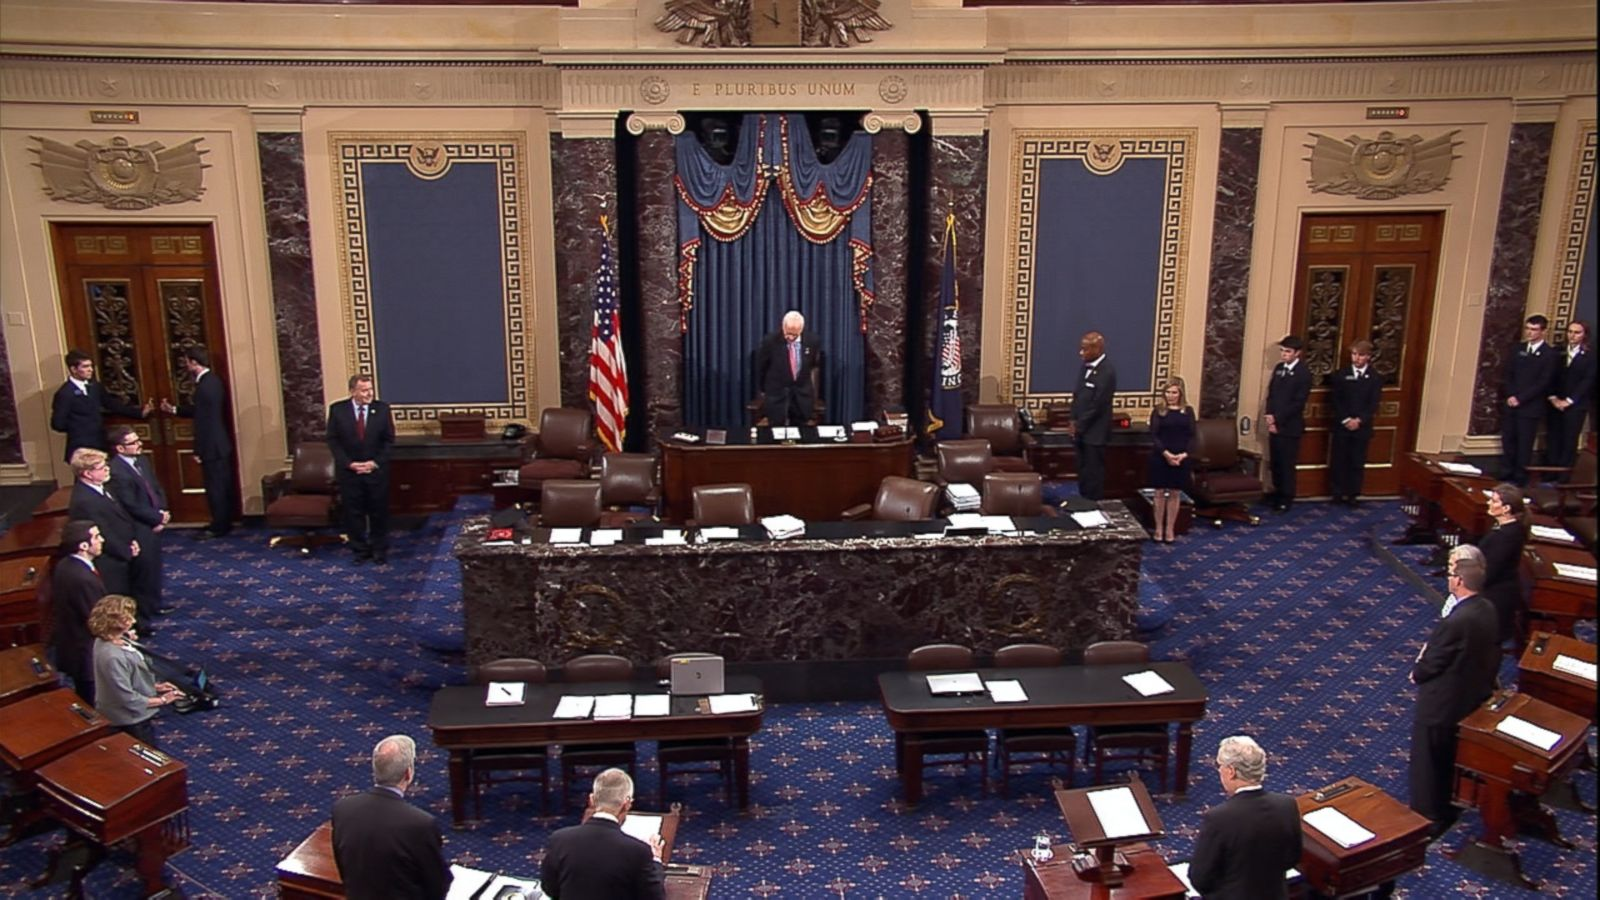 VIDEO: The Senate is set today to override a veto from President Obama, for the first time, over a bill that would allow the families of 9/11 victims to sue Saudi Arabia for its alleged role in the 2001 terrorist attacks.